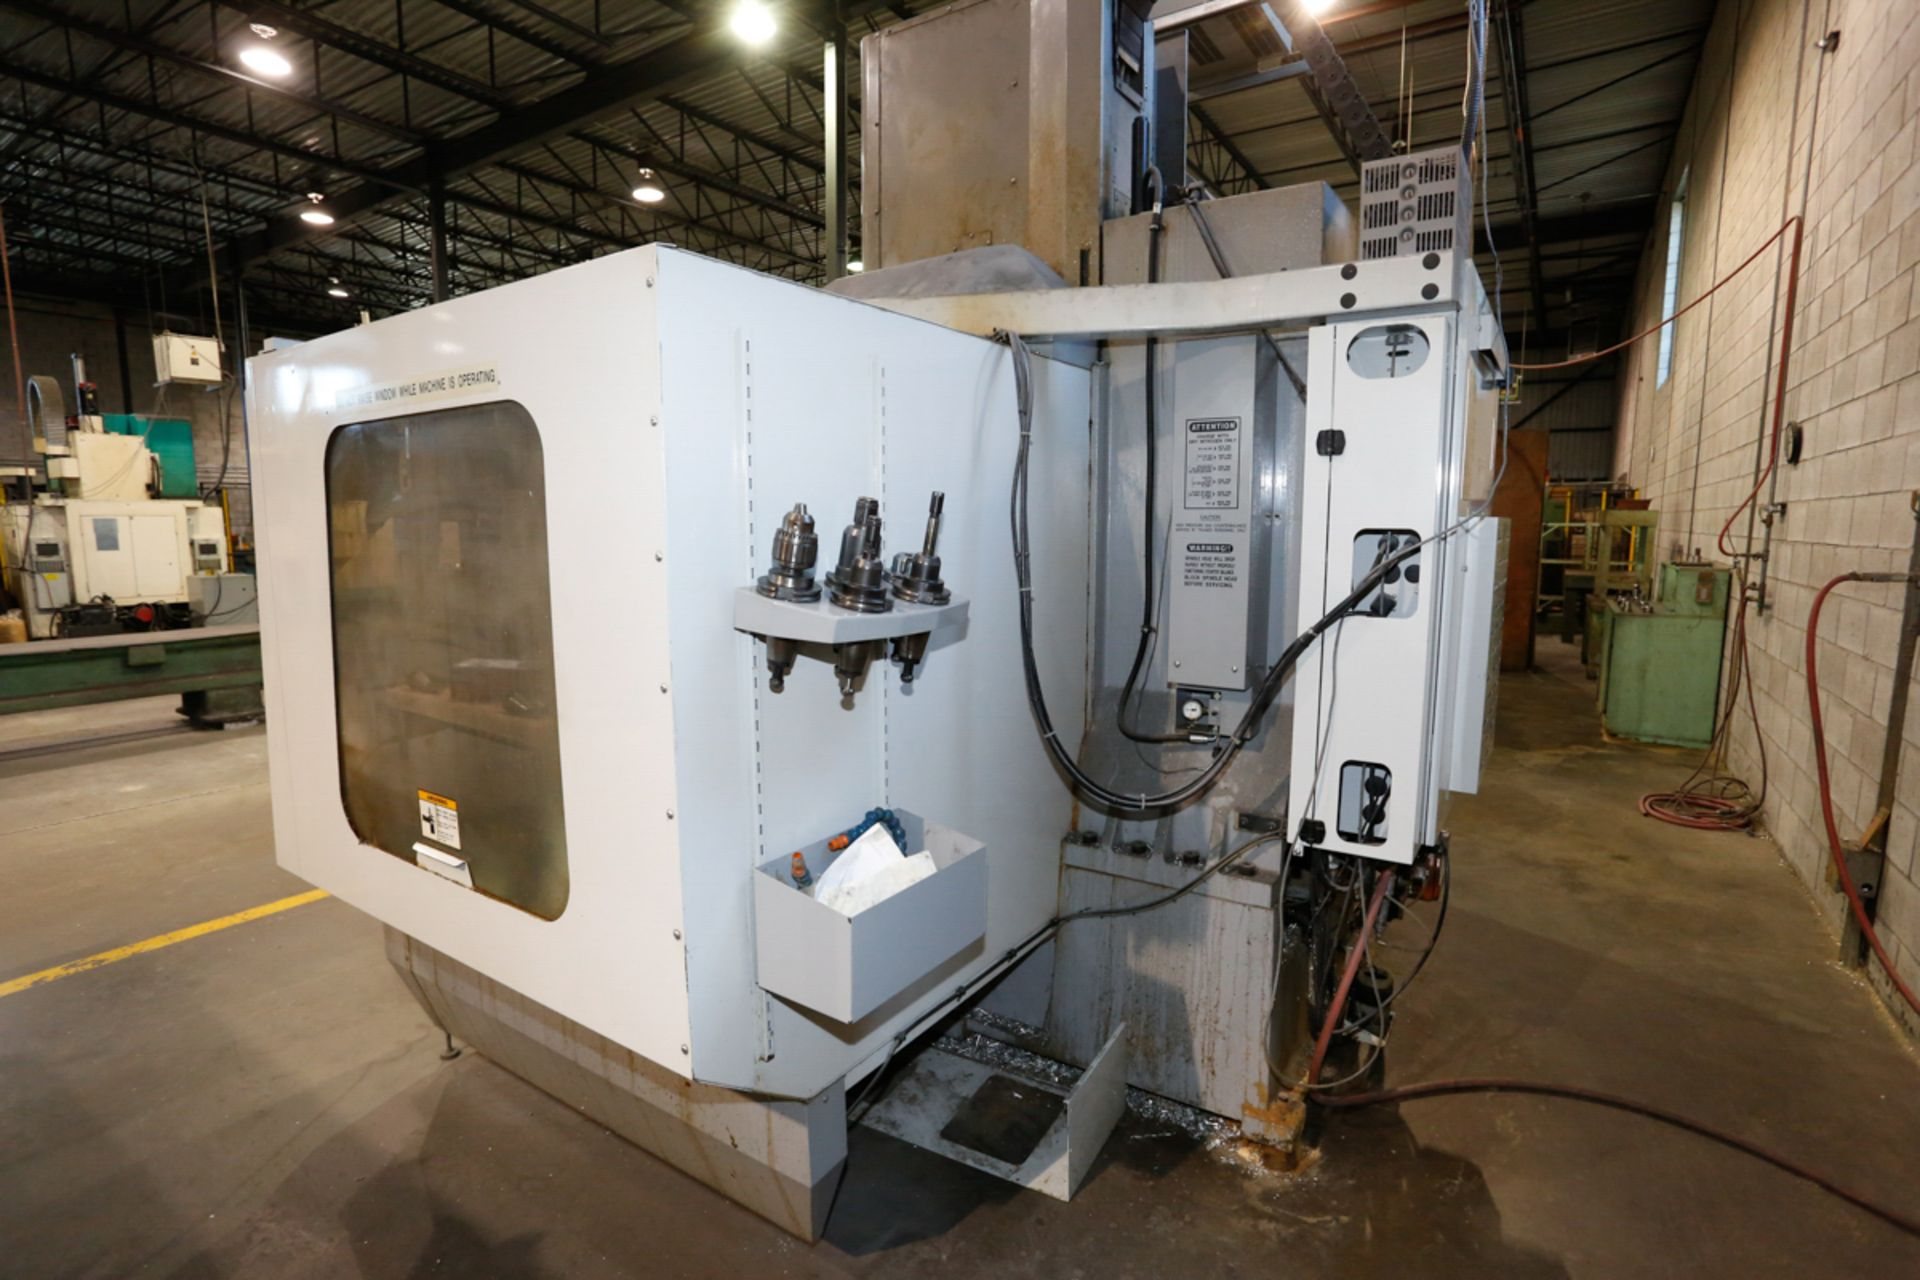 HAAS VF5/50XT 3-AXIX CNC VERTICAL MACHINING CENTER, EXTENDED TRAVEL, 10,000 RPM, 30 ATC, 30 HP 2 - Image 7 of 10